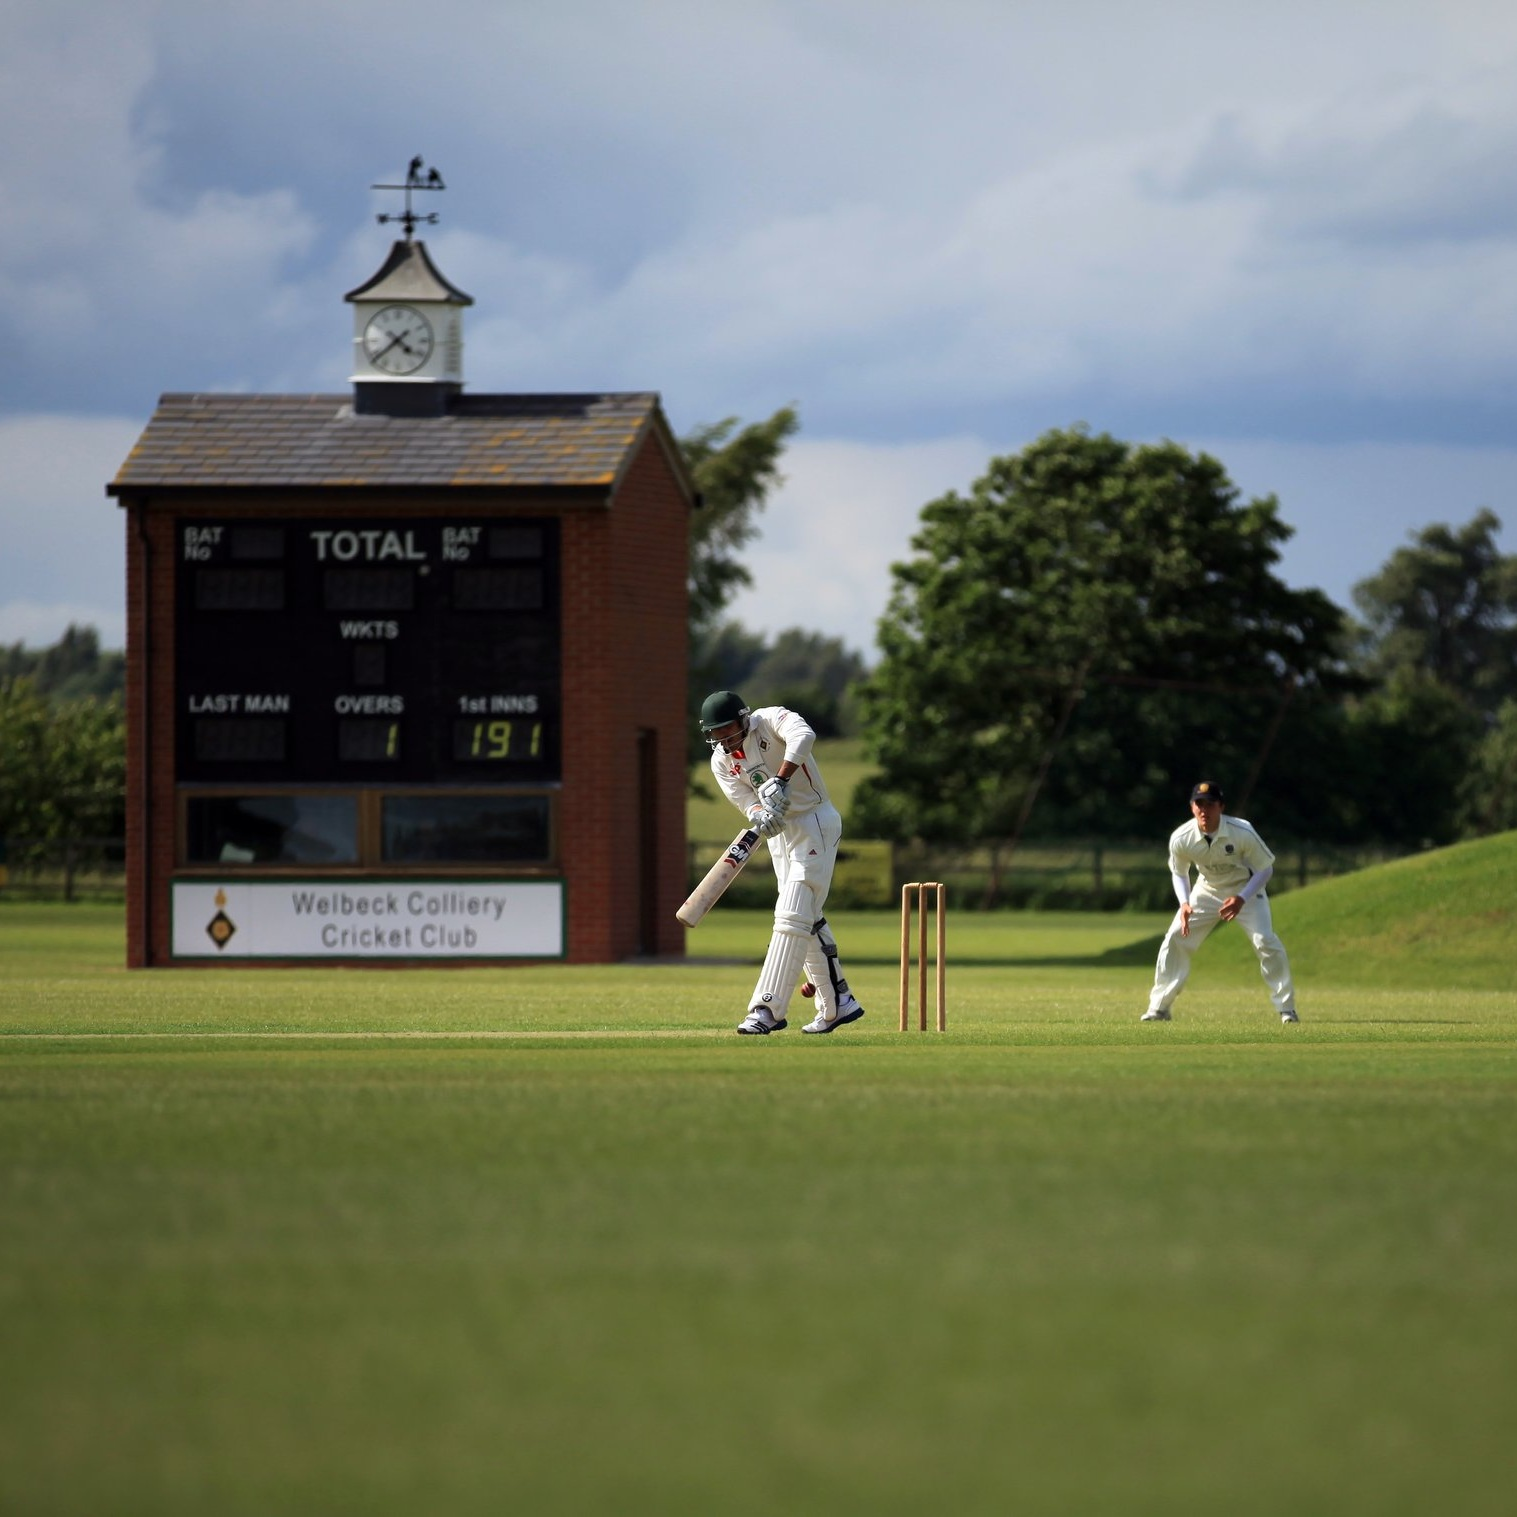 A CRICKET UPDATE - Are you still watching England's men and women playing cricket? Our next vids, courtesy of the ECB are on wicket keeping.Take a look and learn more about playing this great sport.